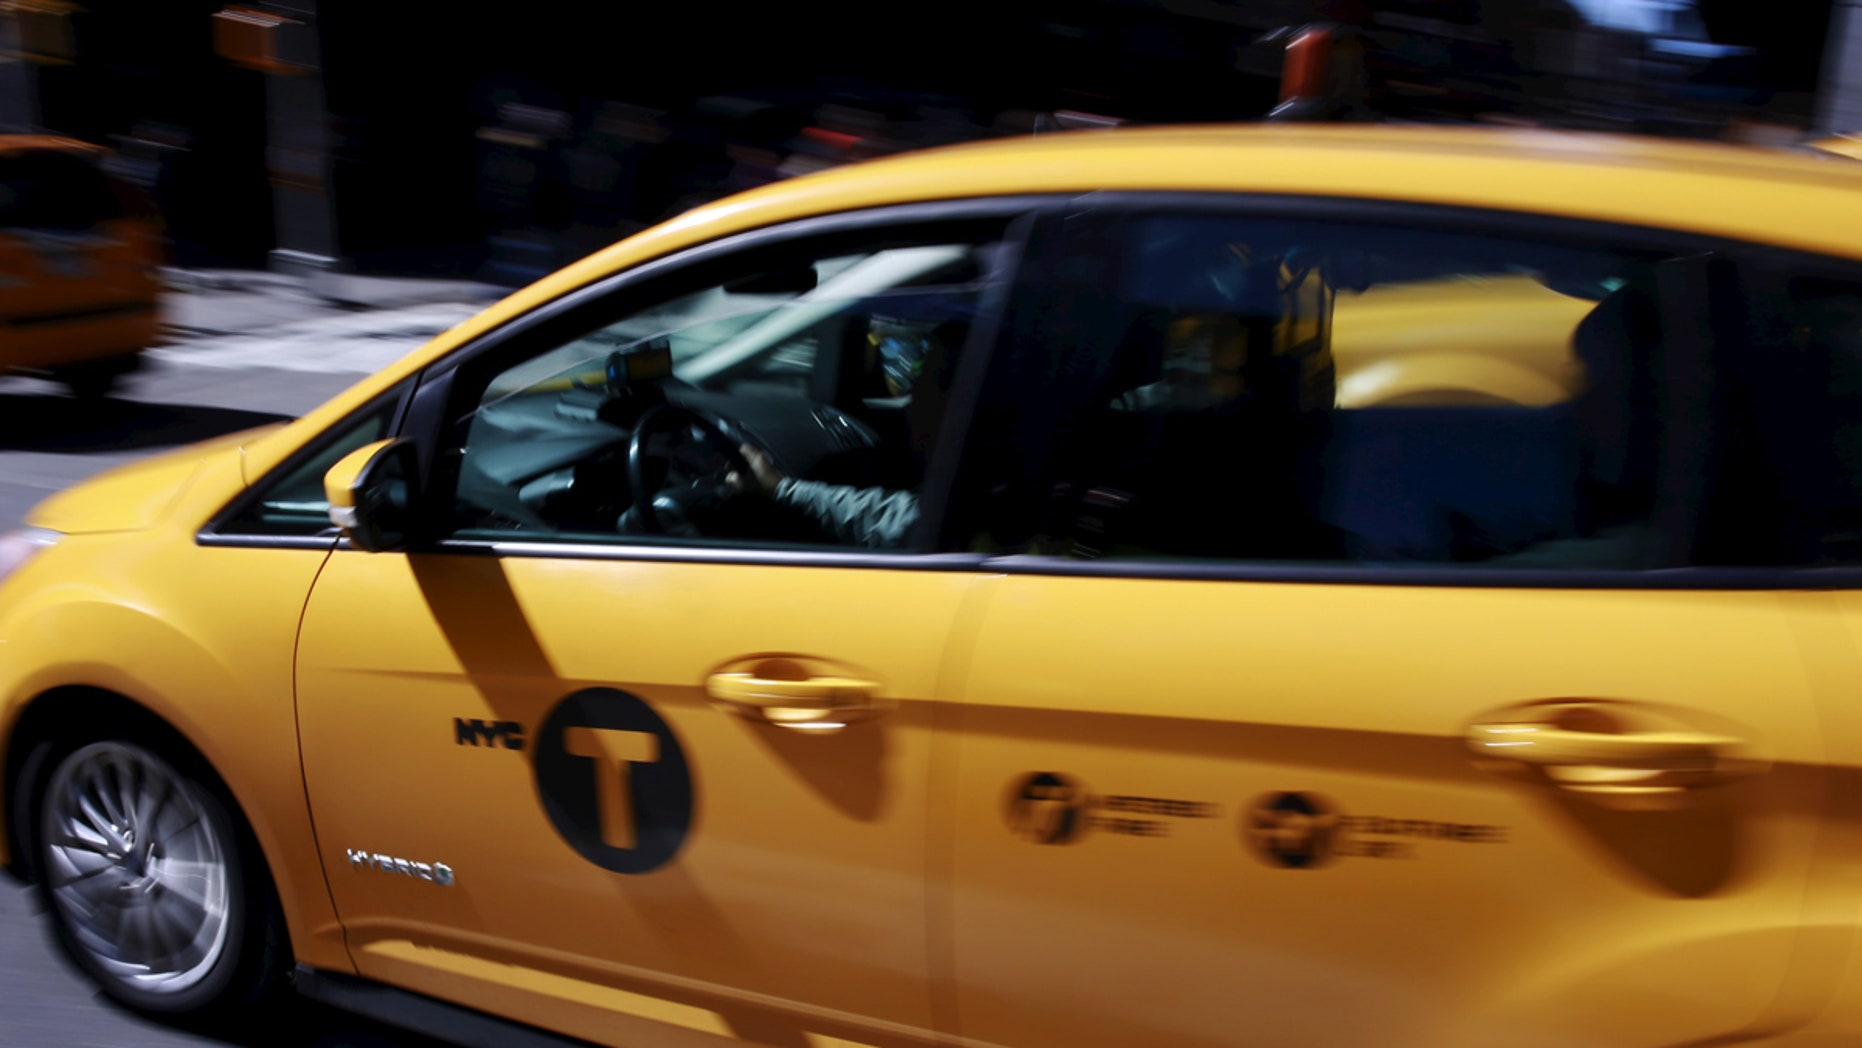 Yellow cabs now have their own Uber-like app | Fox News